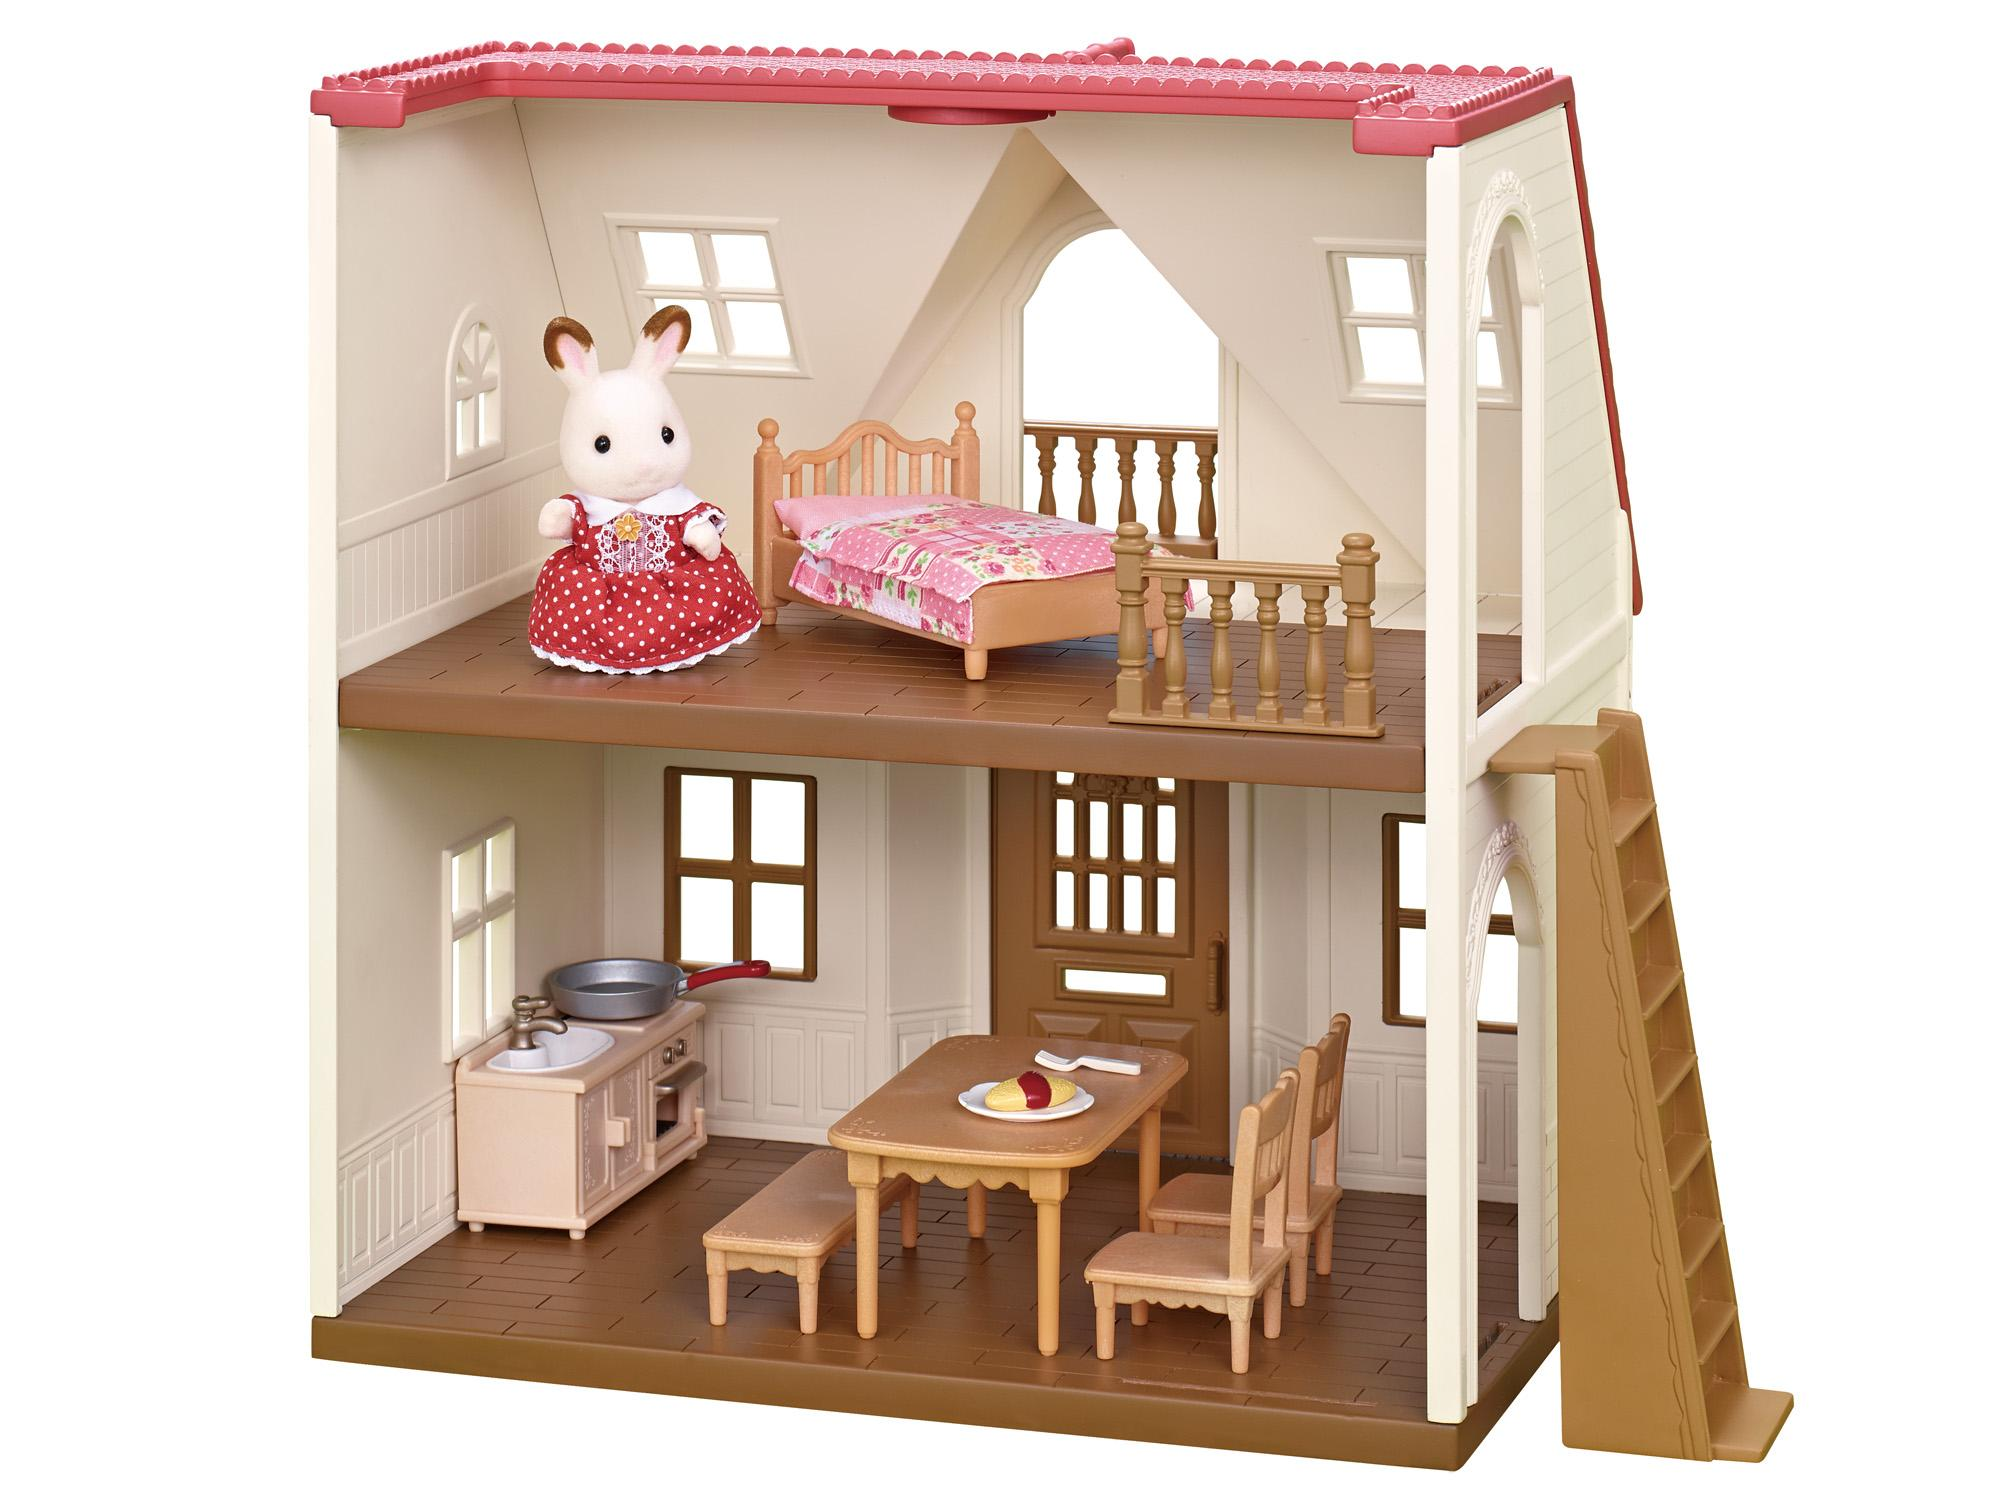 Sylvanian families red roof cosy cottage starter home 5242